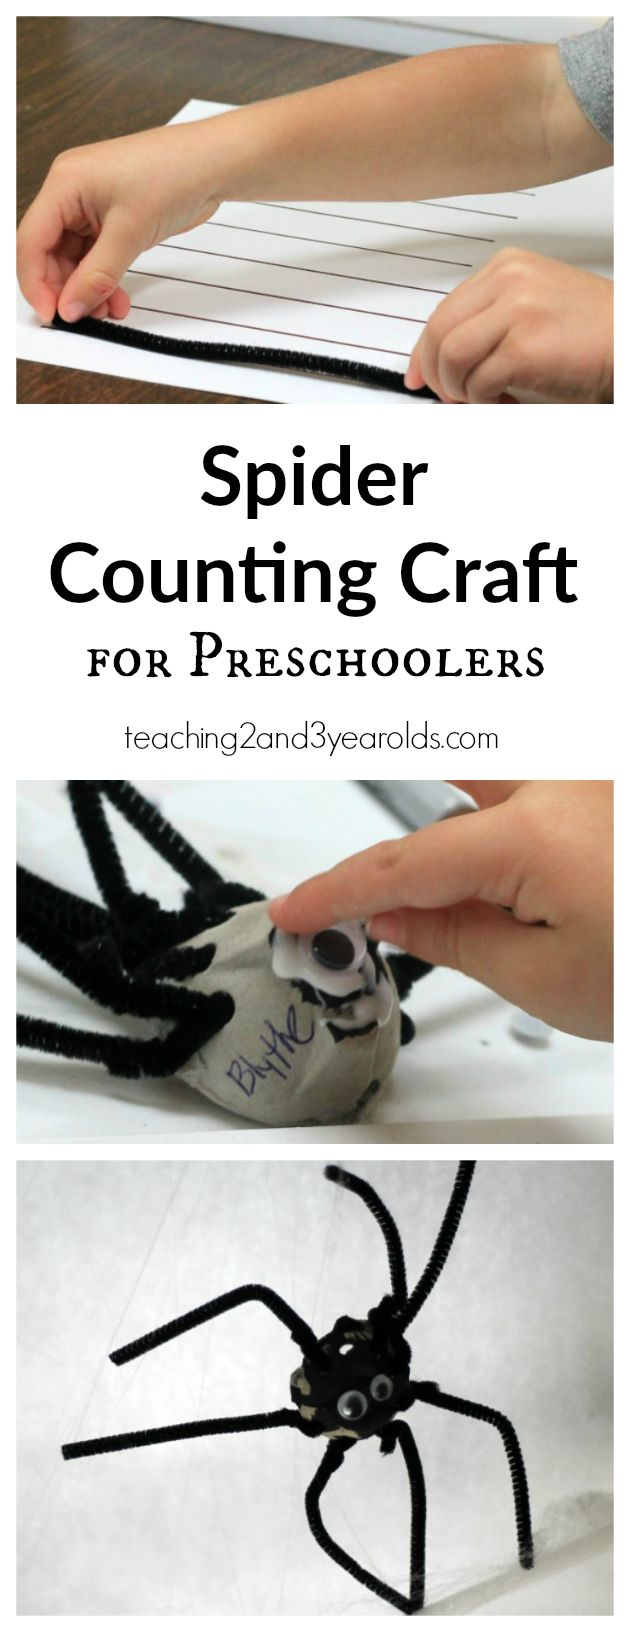 Spider Counting Craft for Preschoolers - A fun way to work on simple math skills at the art table - Teaching 2 and 3 Year Olds